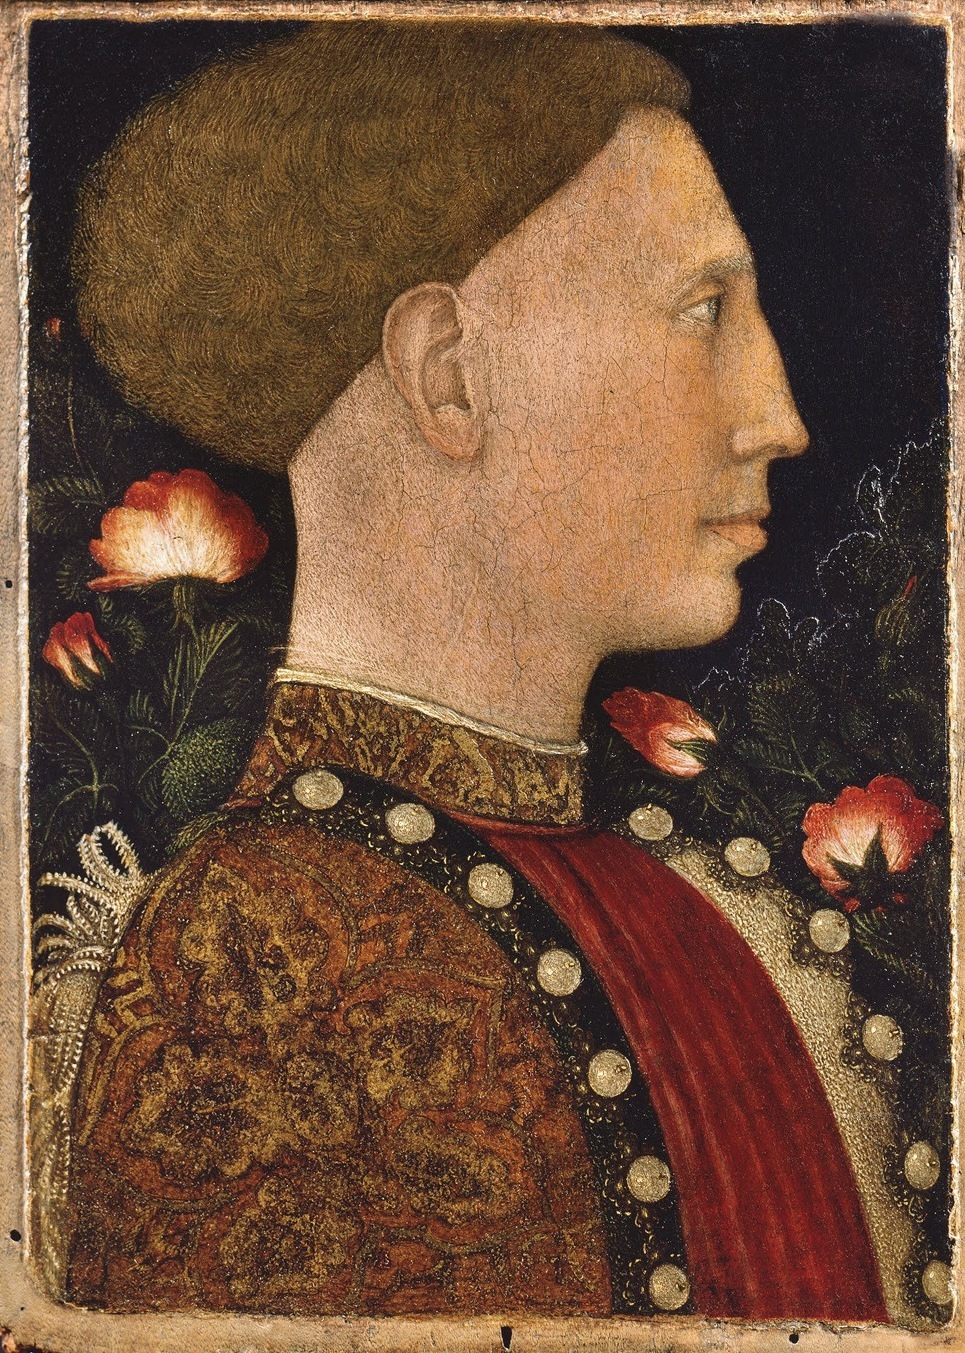 http://upload.wikimedia.org/wikipedia/commons/b/b3/Pisanello_015.jpg